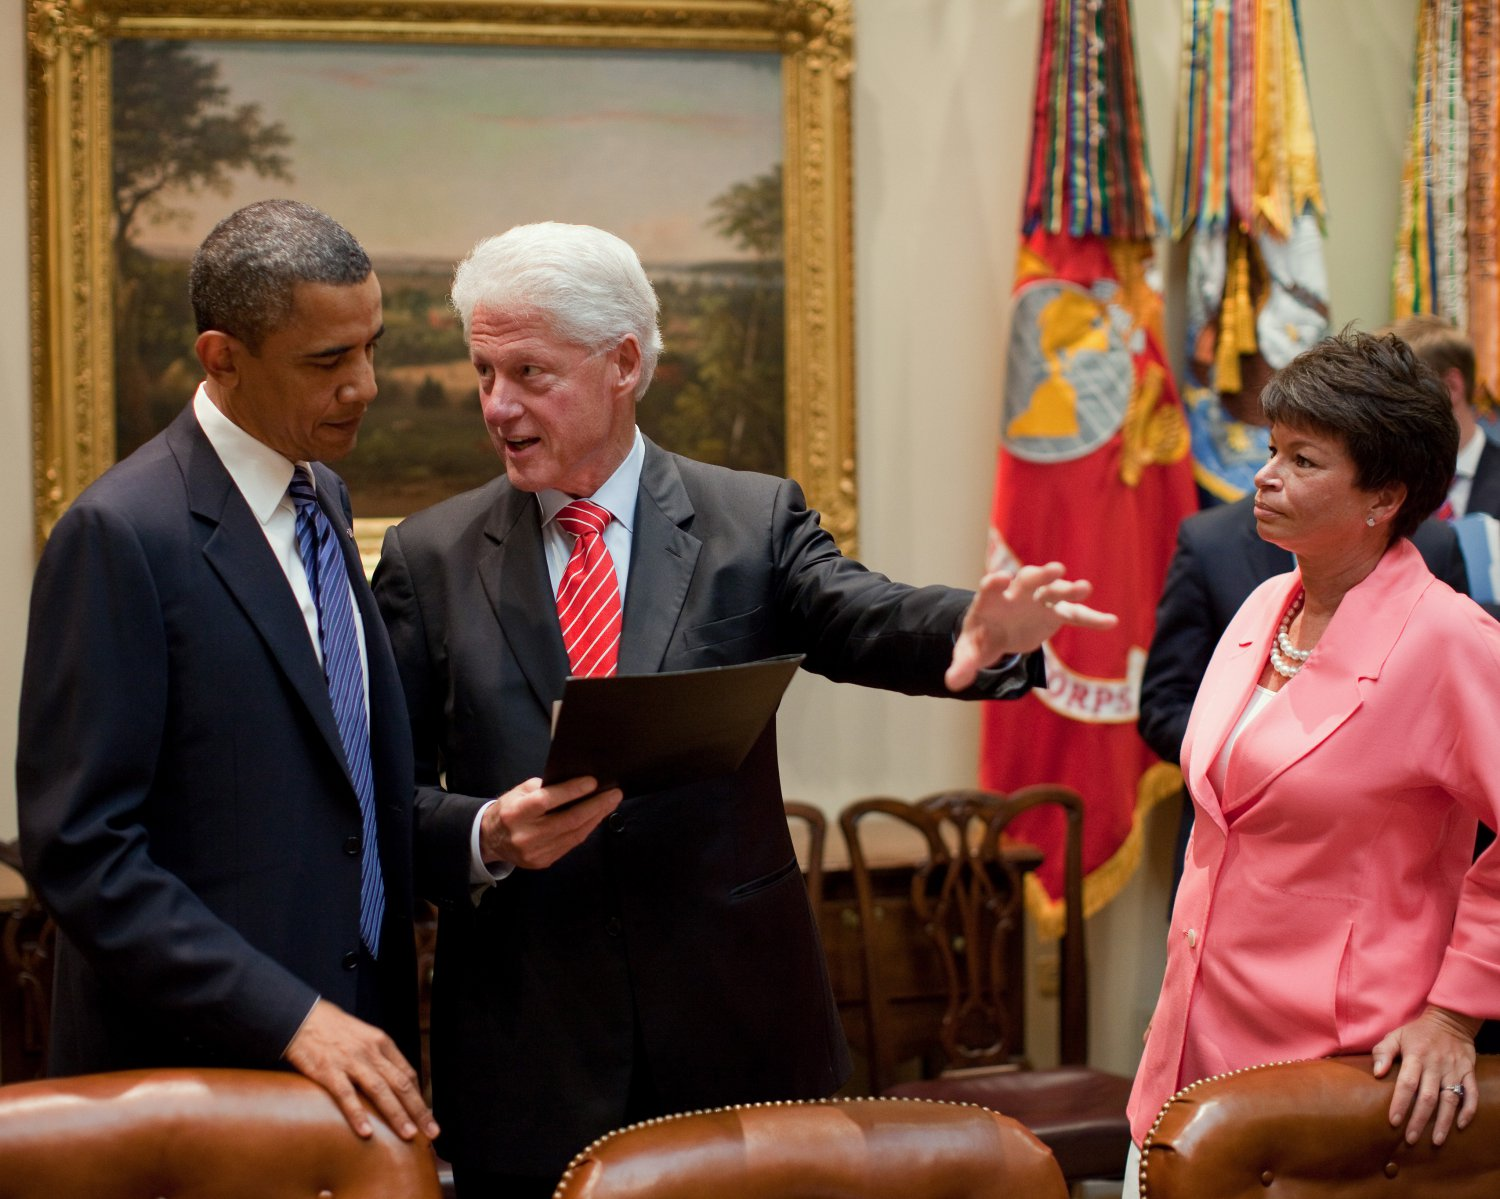 PRESIDENT BARACK OBAMA WITH BILL CLINTON AND VALERIE JARRETT 8X10 PHOTO (ZY-384)